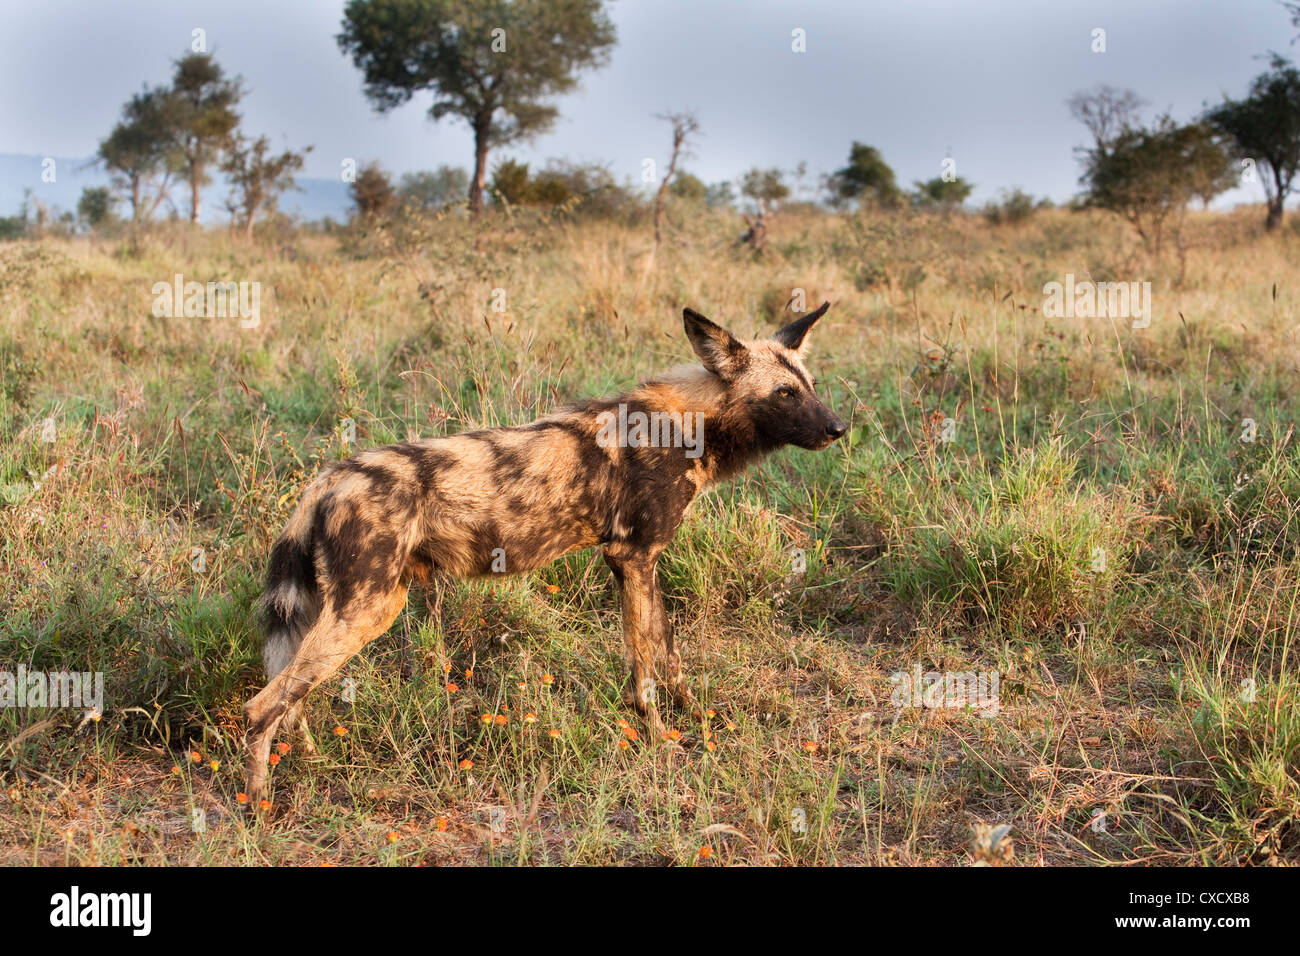 African wild dog (Lycaon pictus), Kruger National Park, South Africa, Africa - Stock Image